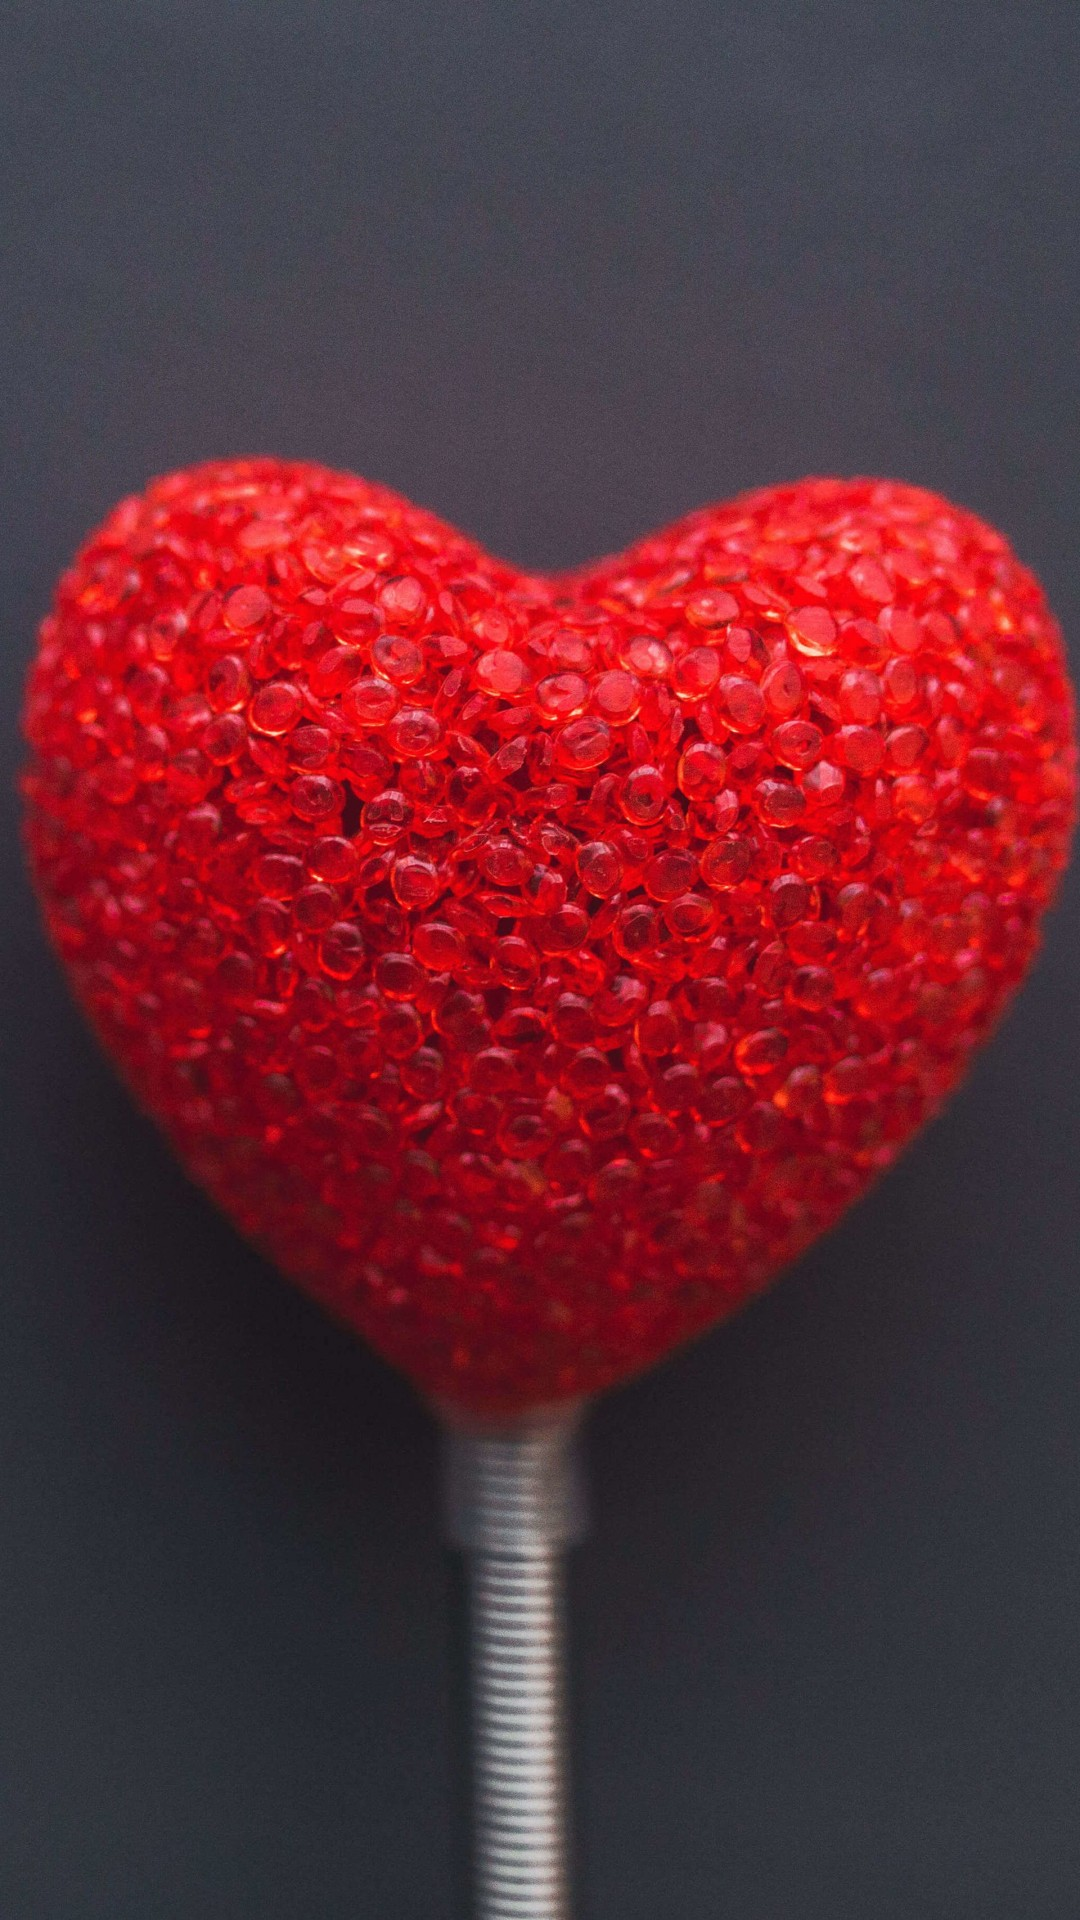 Red Heart Lollipop Wallpaper for SAMSUNG Galaxy Note 3